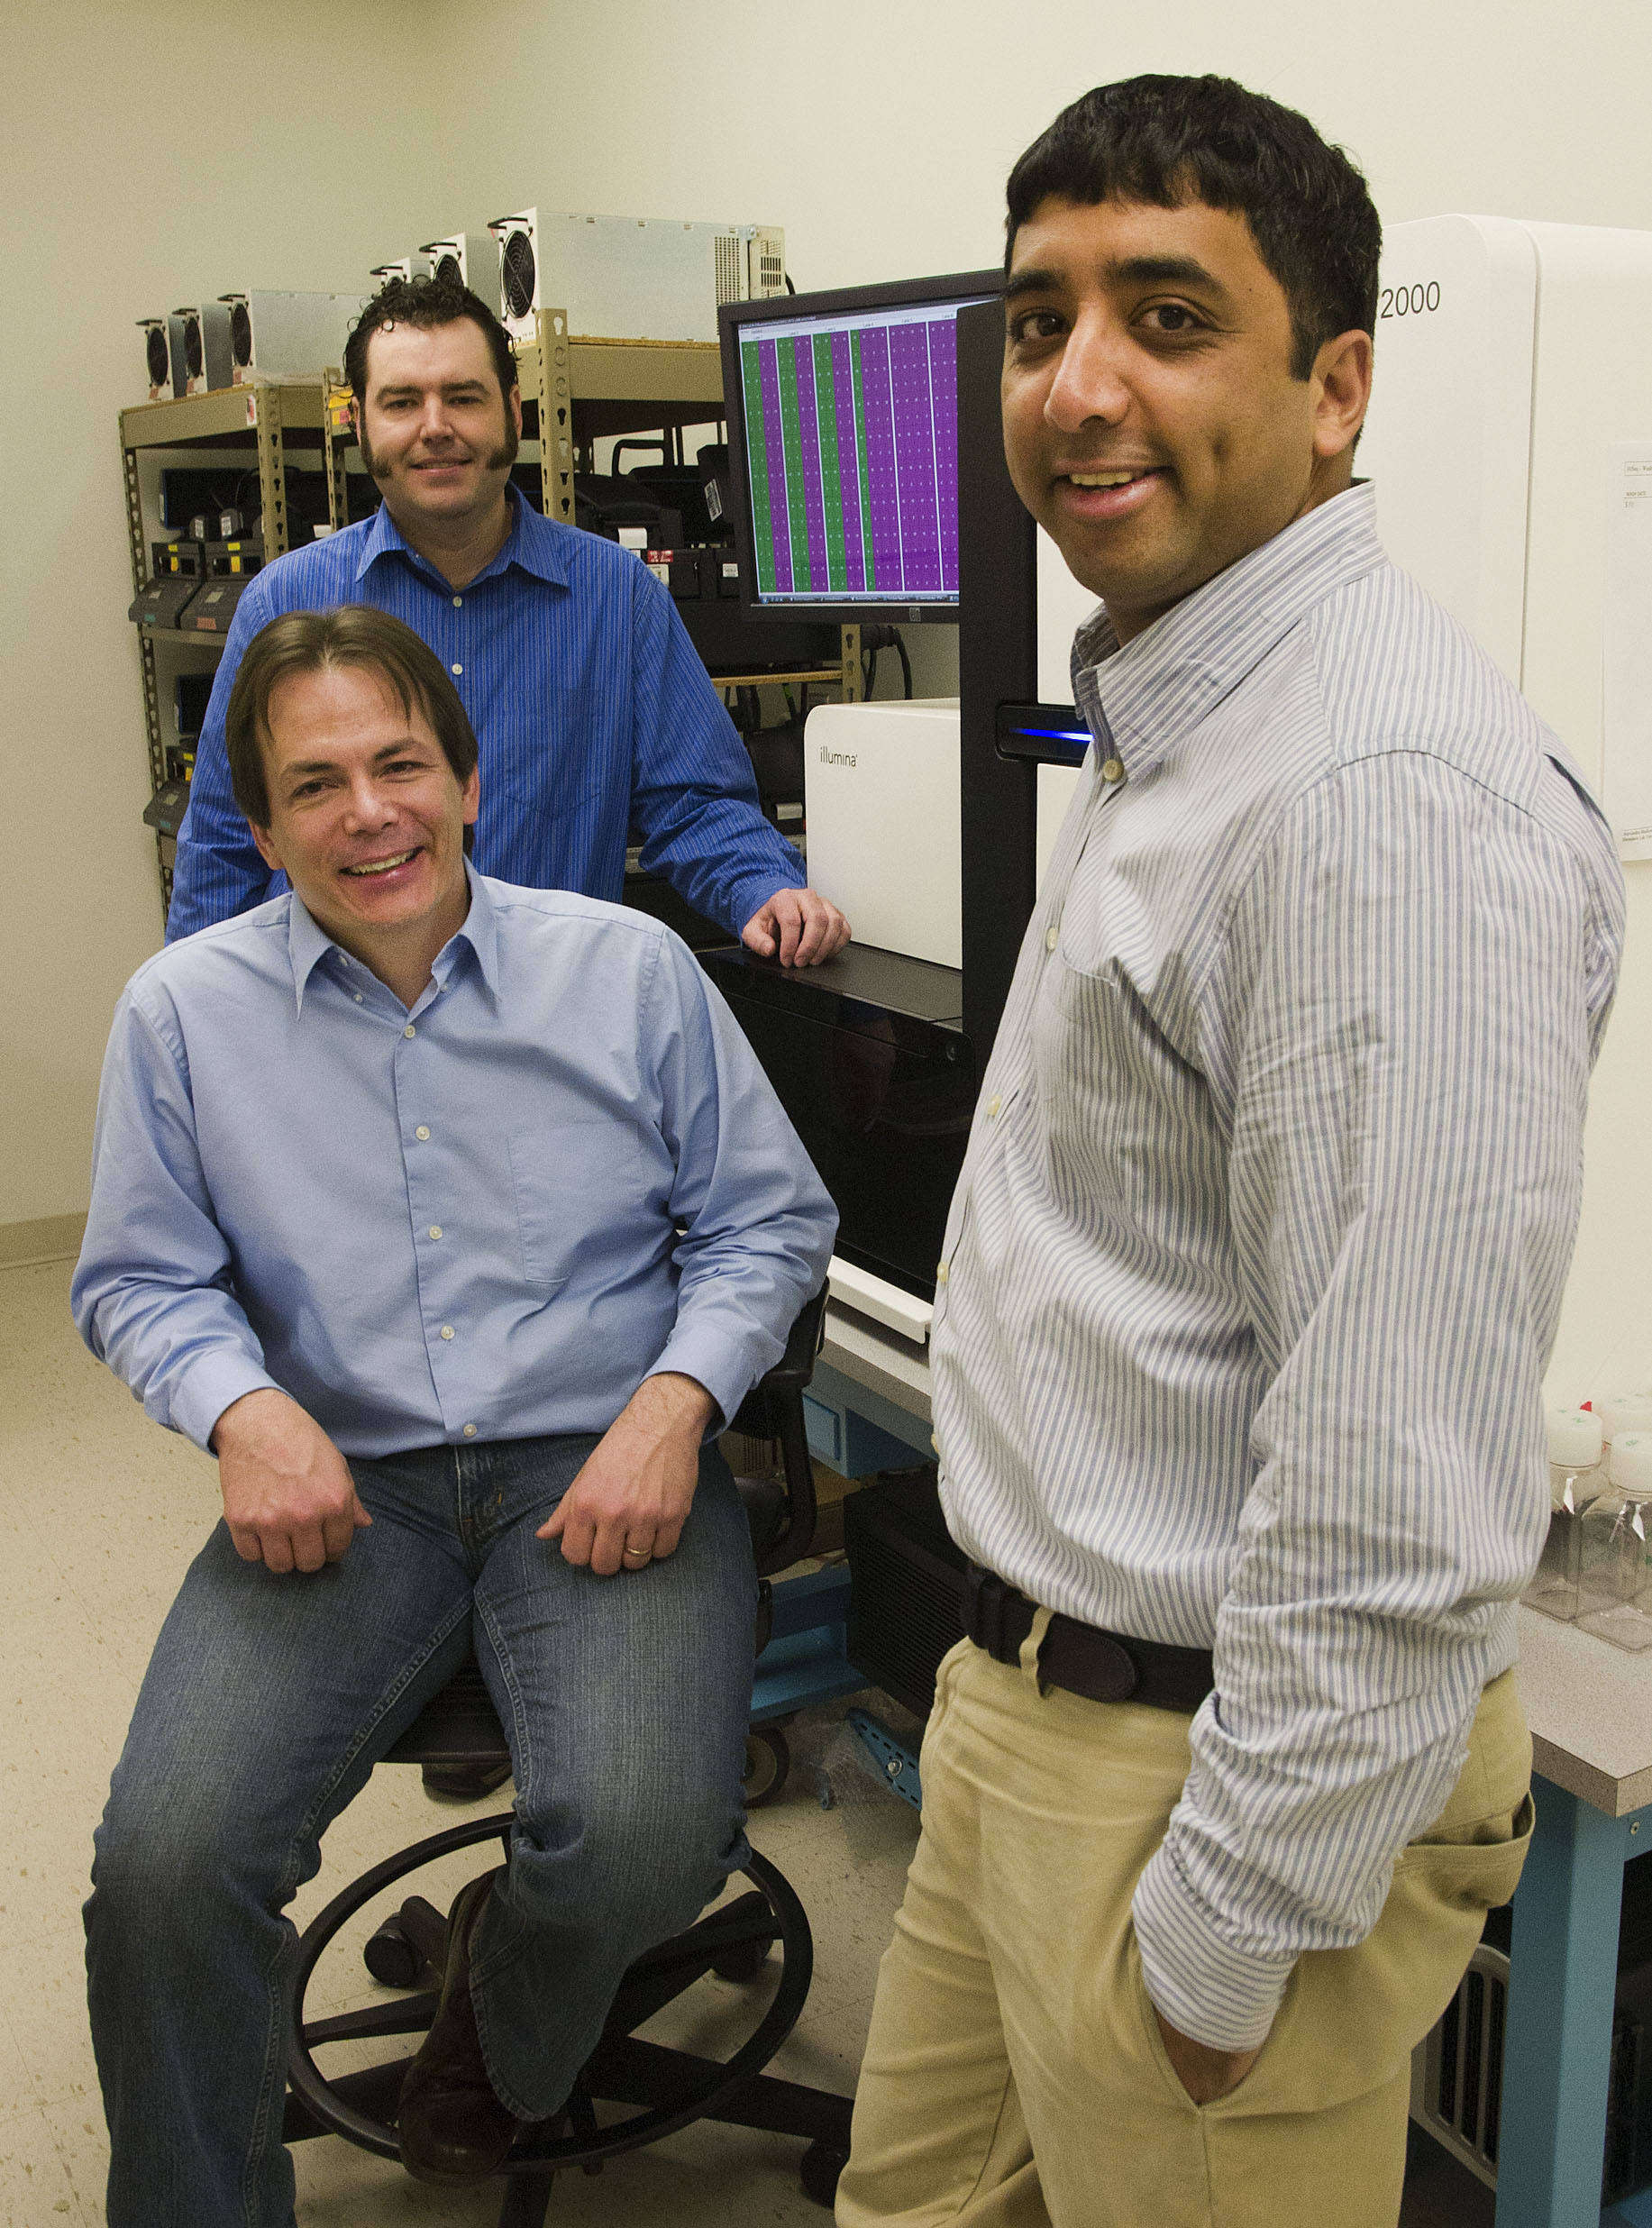 Brian O'Roak, Evan Eichler (seated) and Jay Shedure (right) in one of the UW labs where researchers searched for sporadic mutations associated with autism.